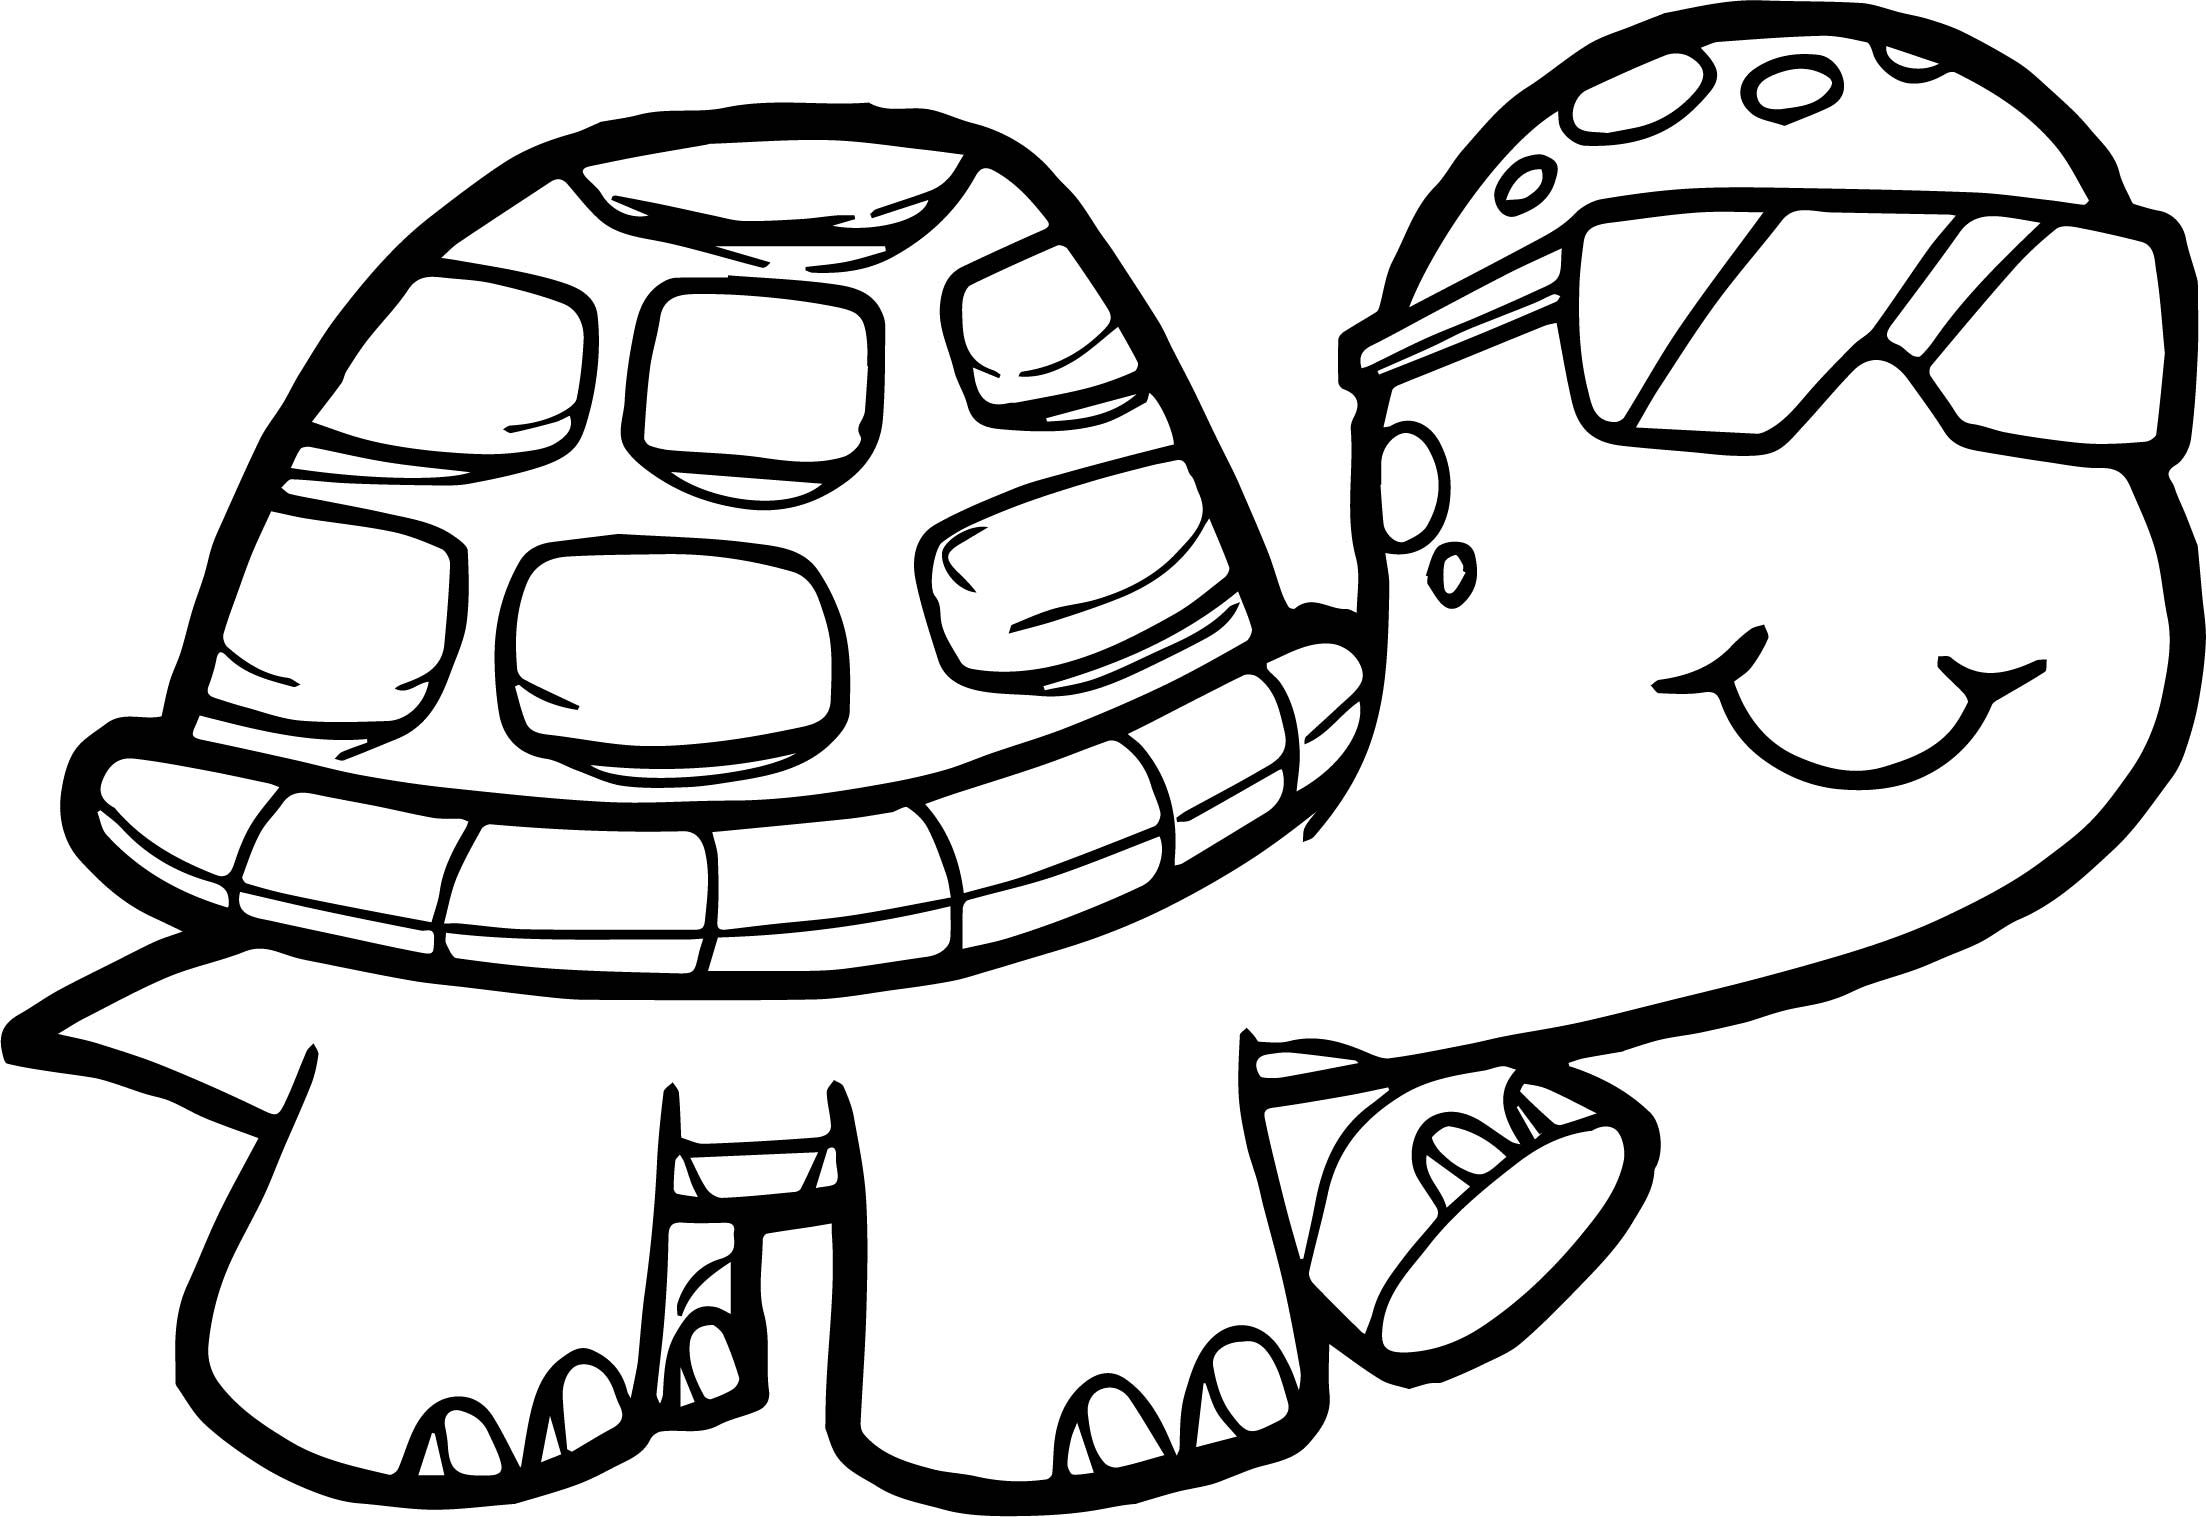 2206x1517 Turtle Coloring Page Printable To Funny Print Draw Glasses